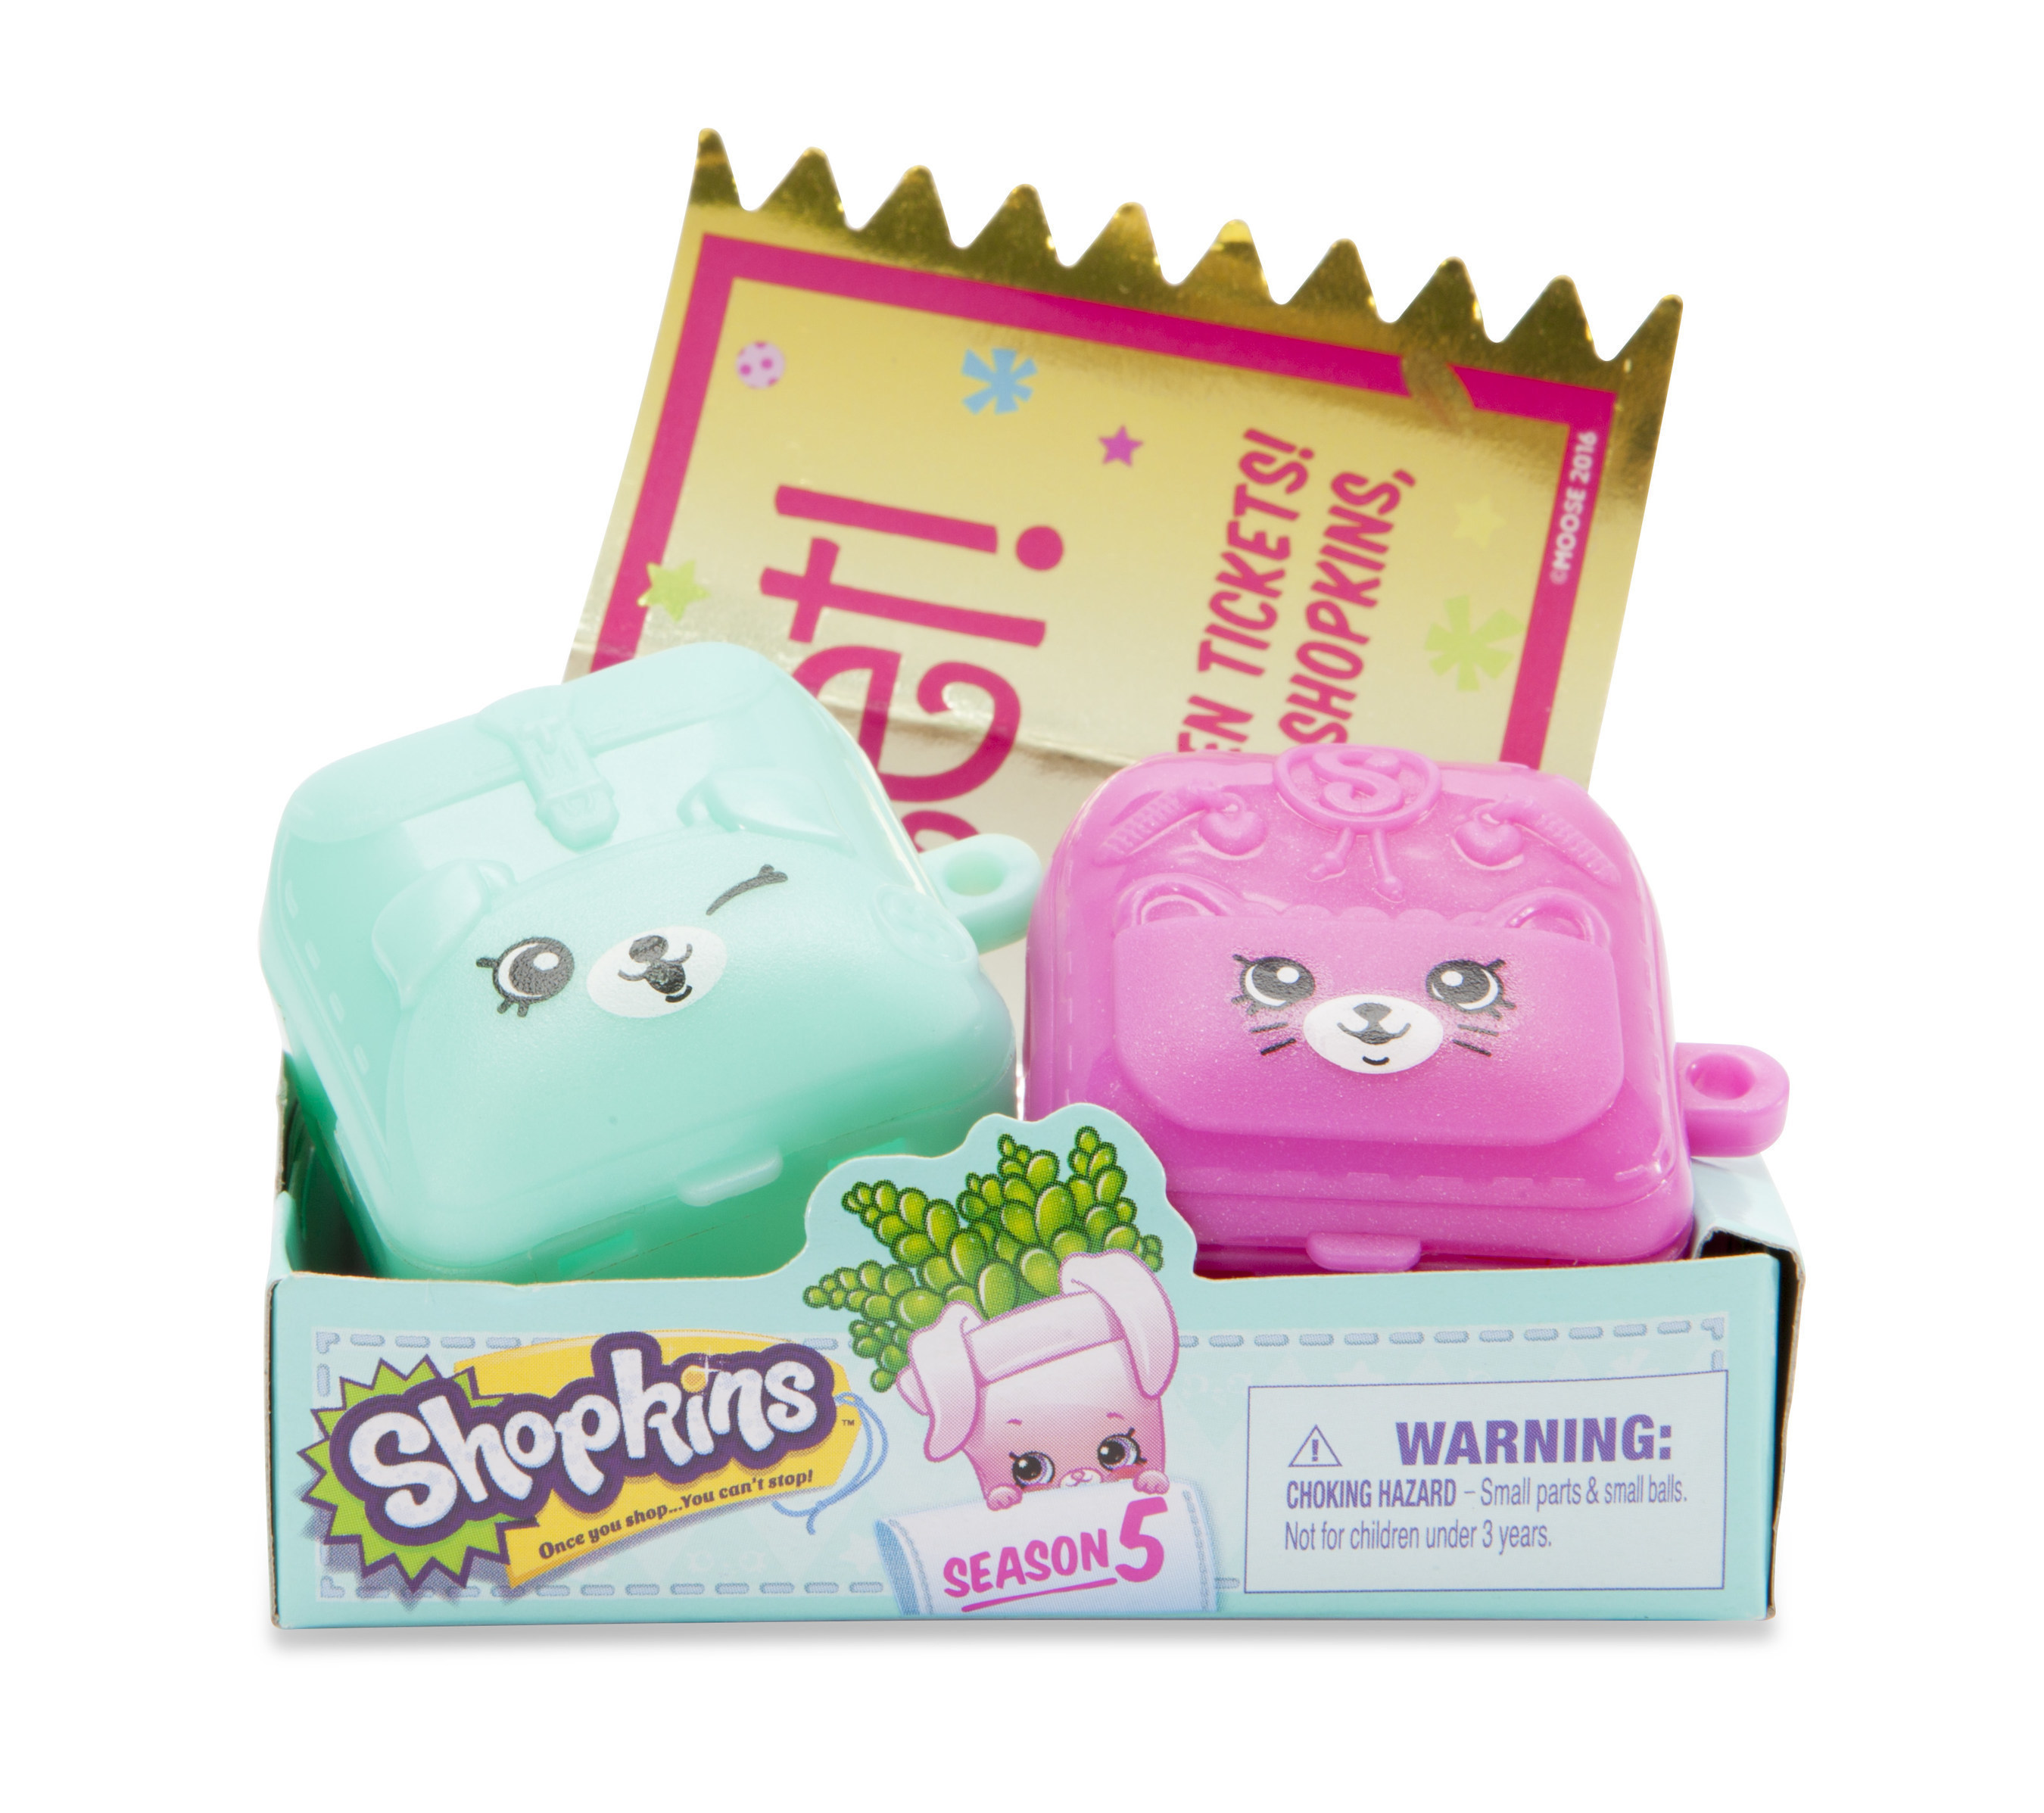 Moose Toys announces its first-ever Shopkins Golden Ticket Hunt, launching a nationwide treasure hunt to celebrate Shopkins fans and the fifth season of America's favorite tiny toy.